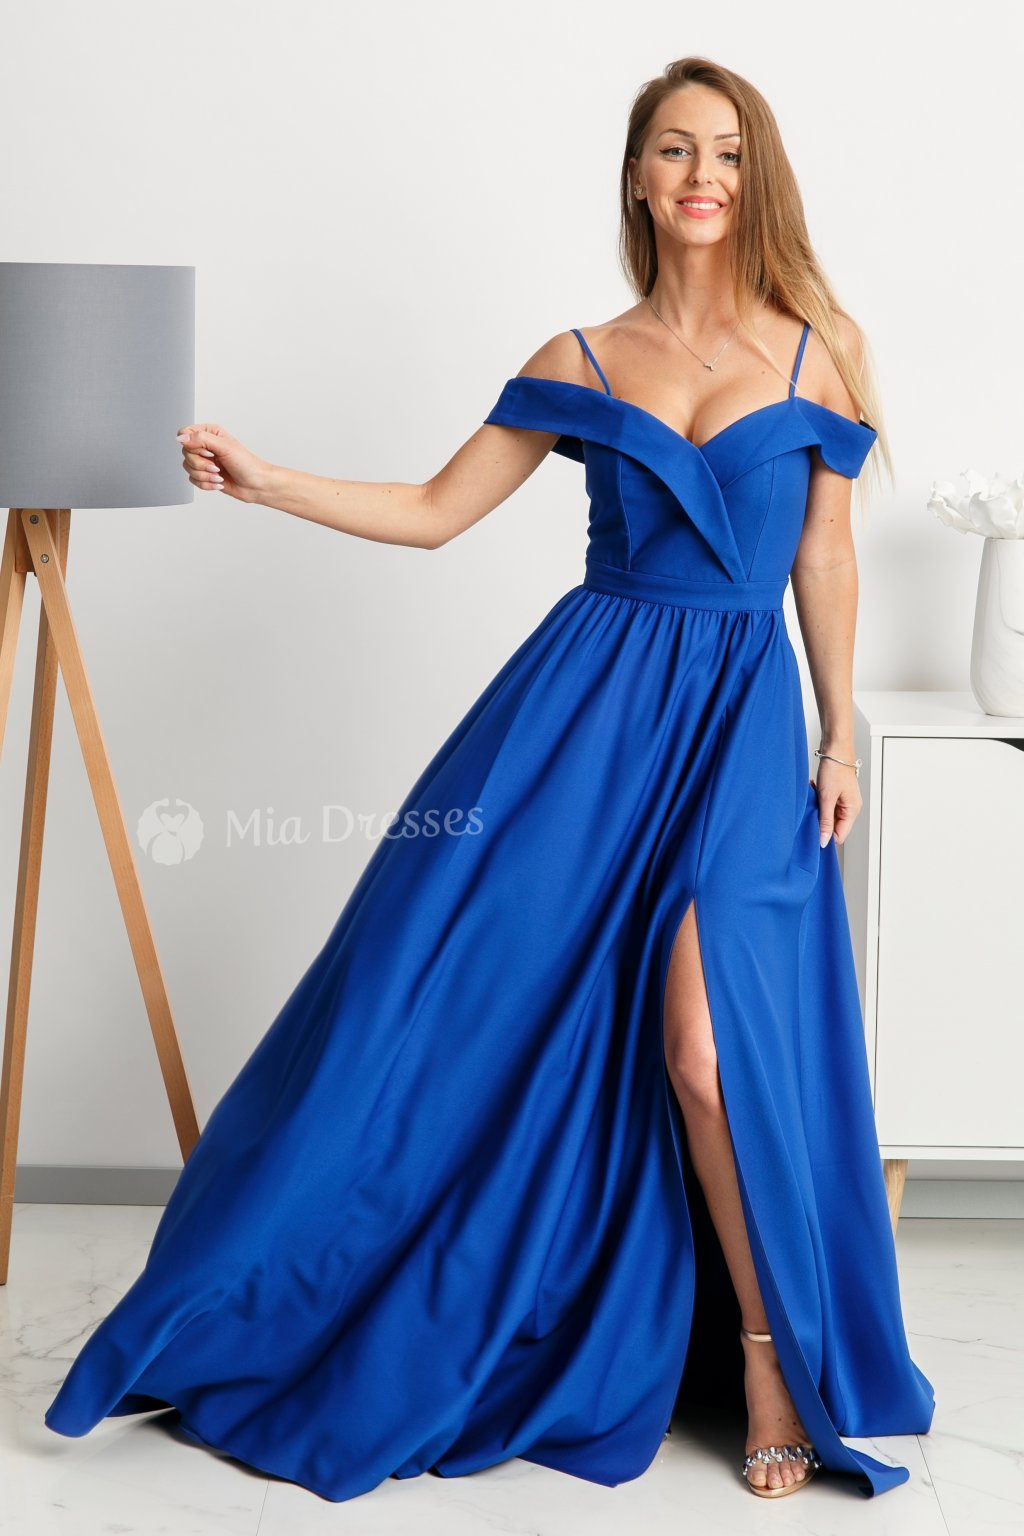 Blue off-the-shoulders formal dress